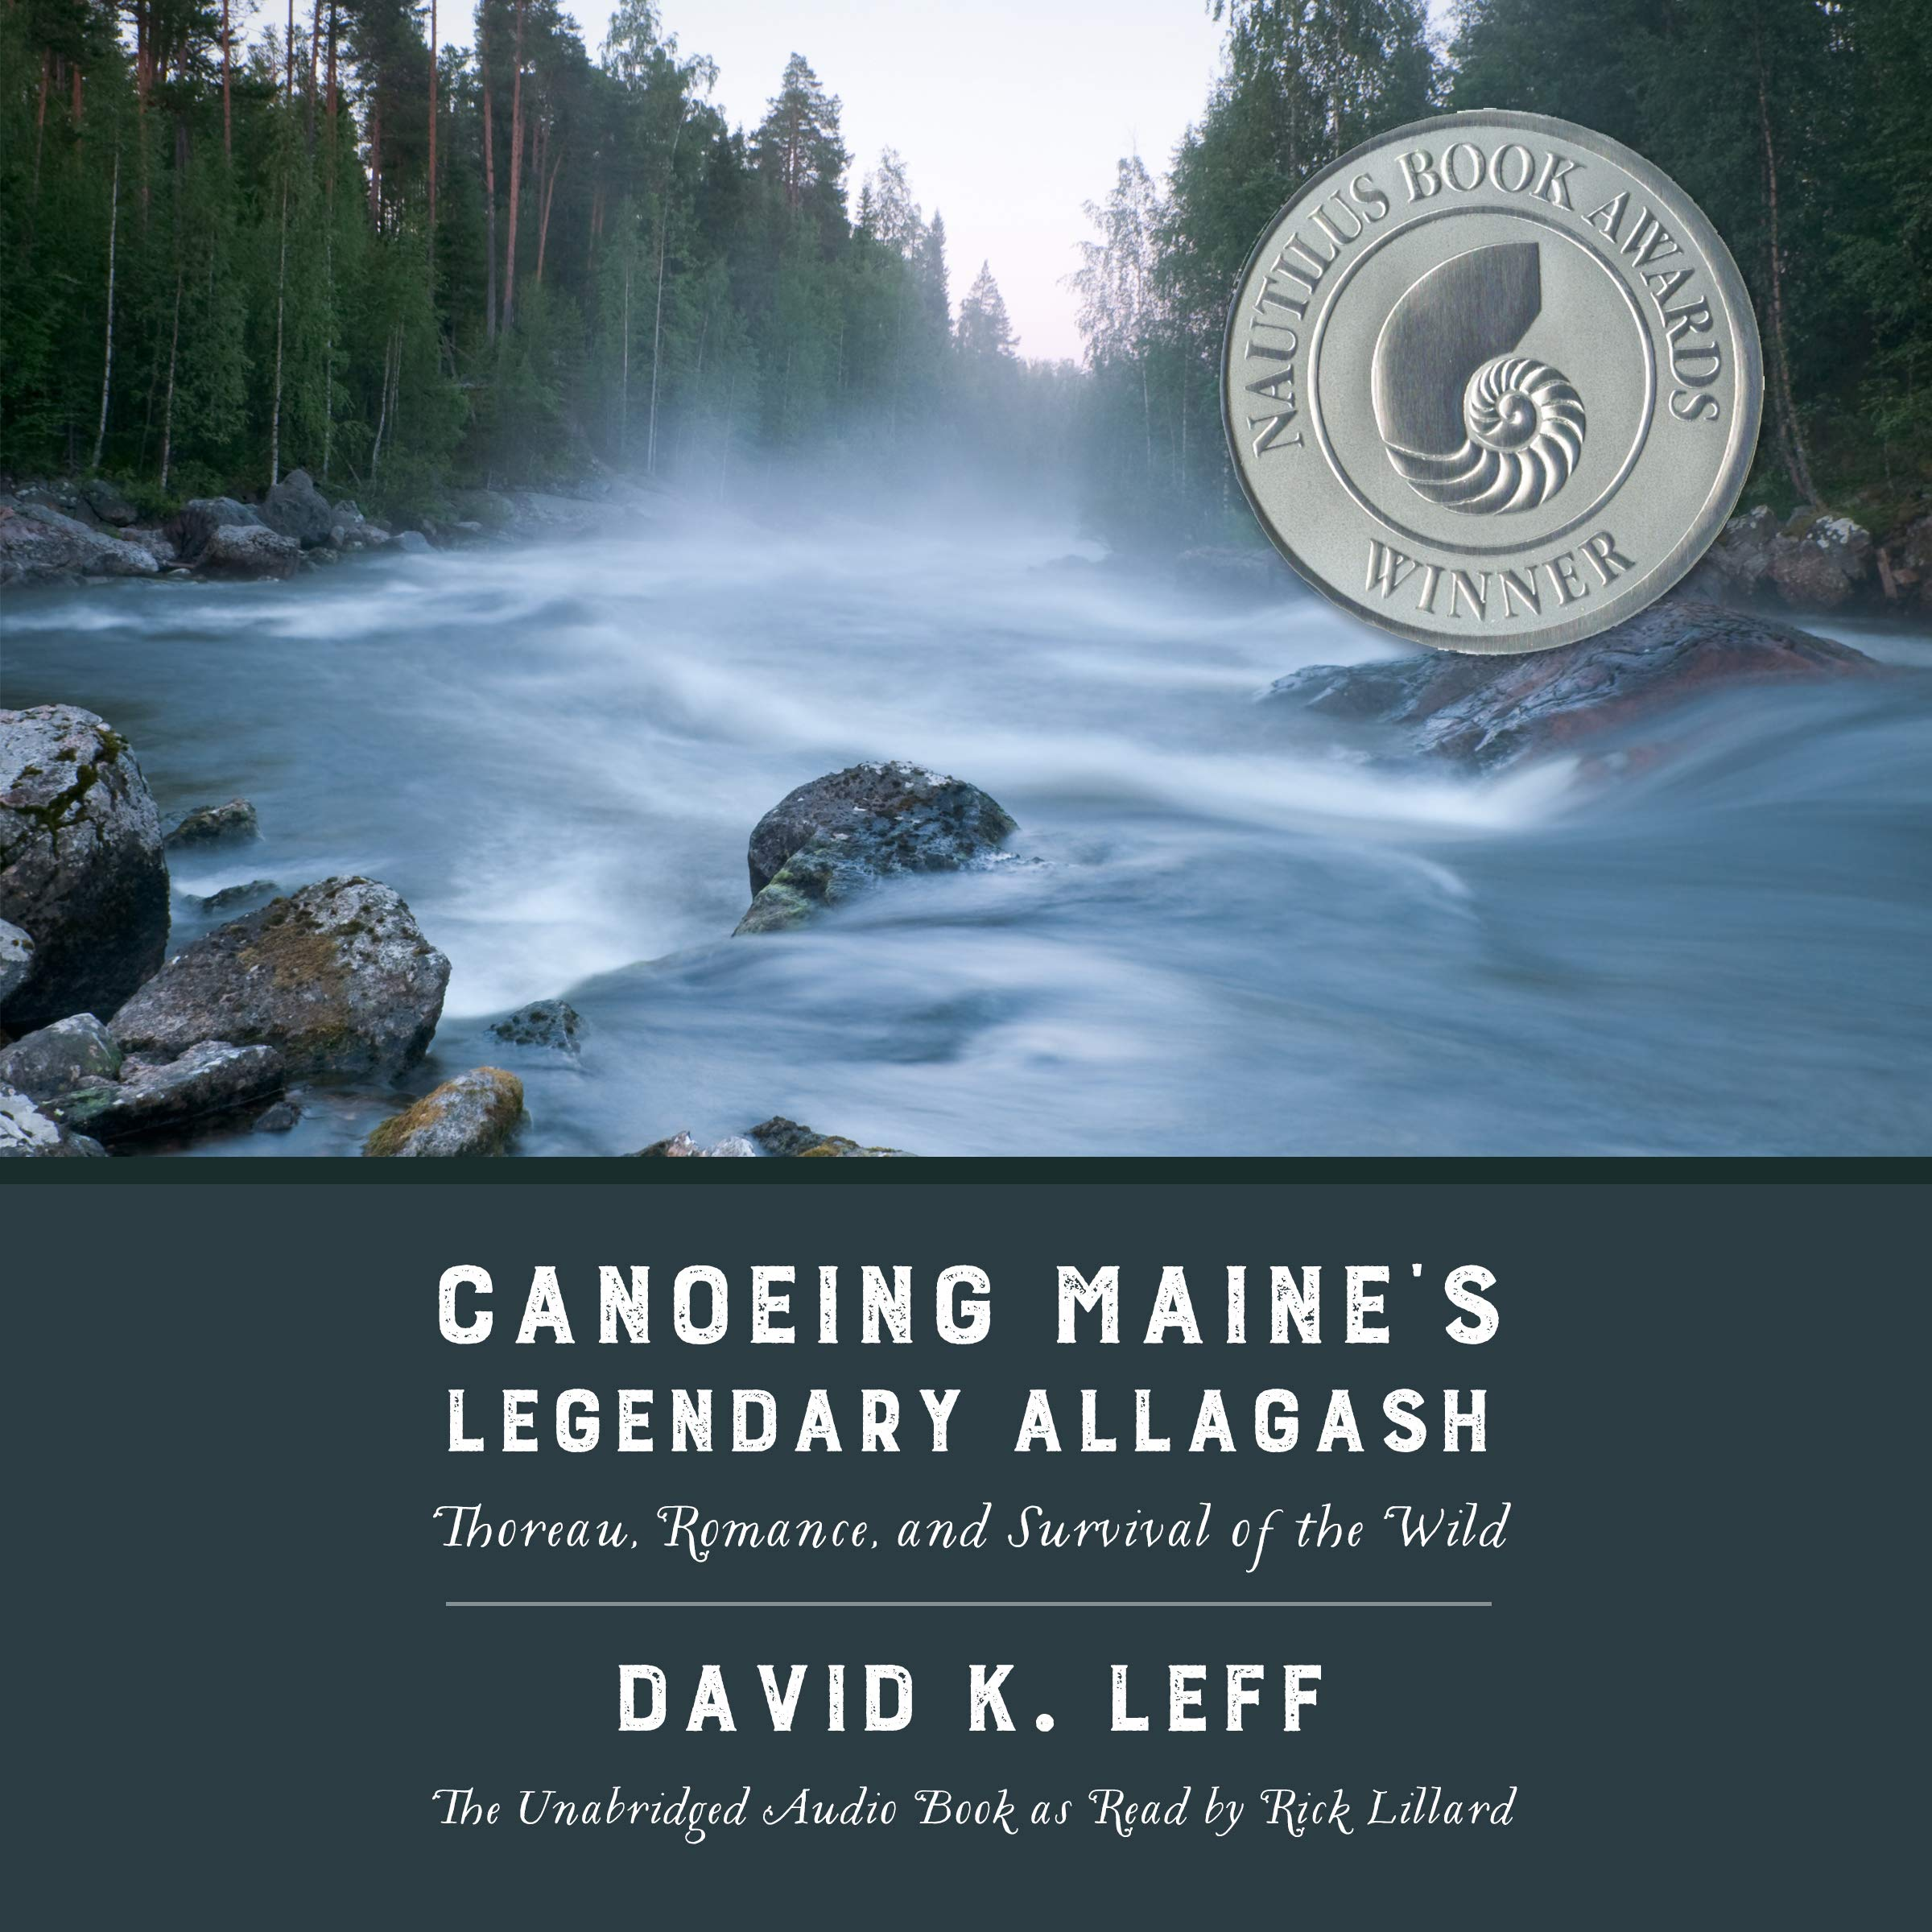 Canoeing Maine's Legendary Allagash: Thoreau, Romance, and Survival of the Wild